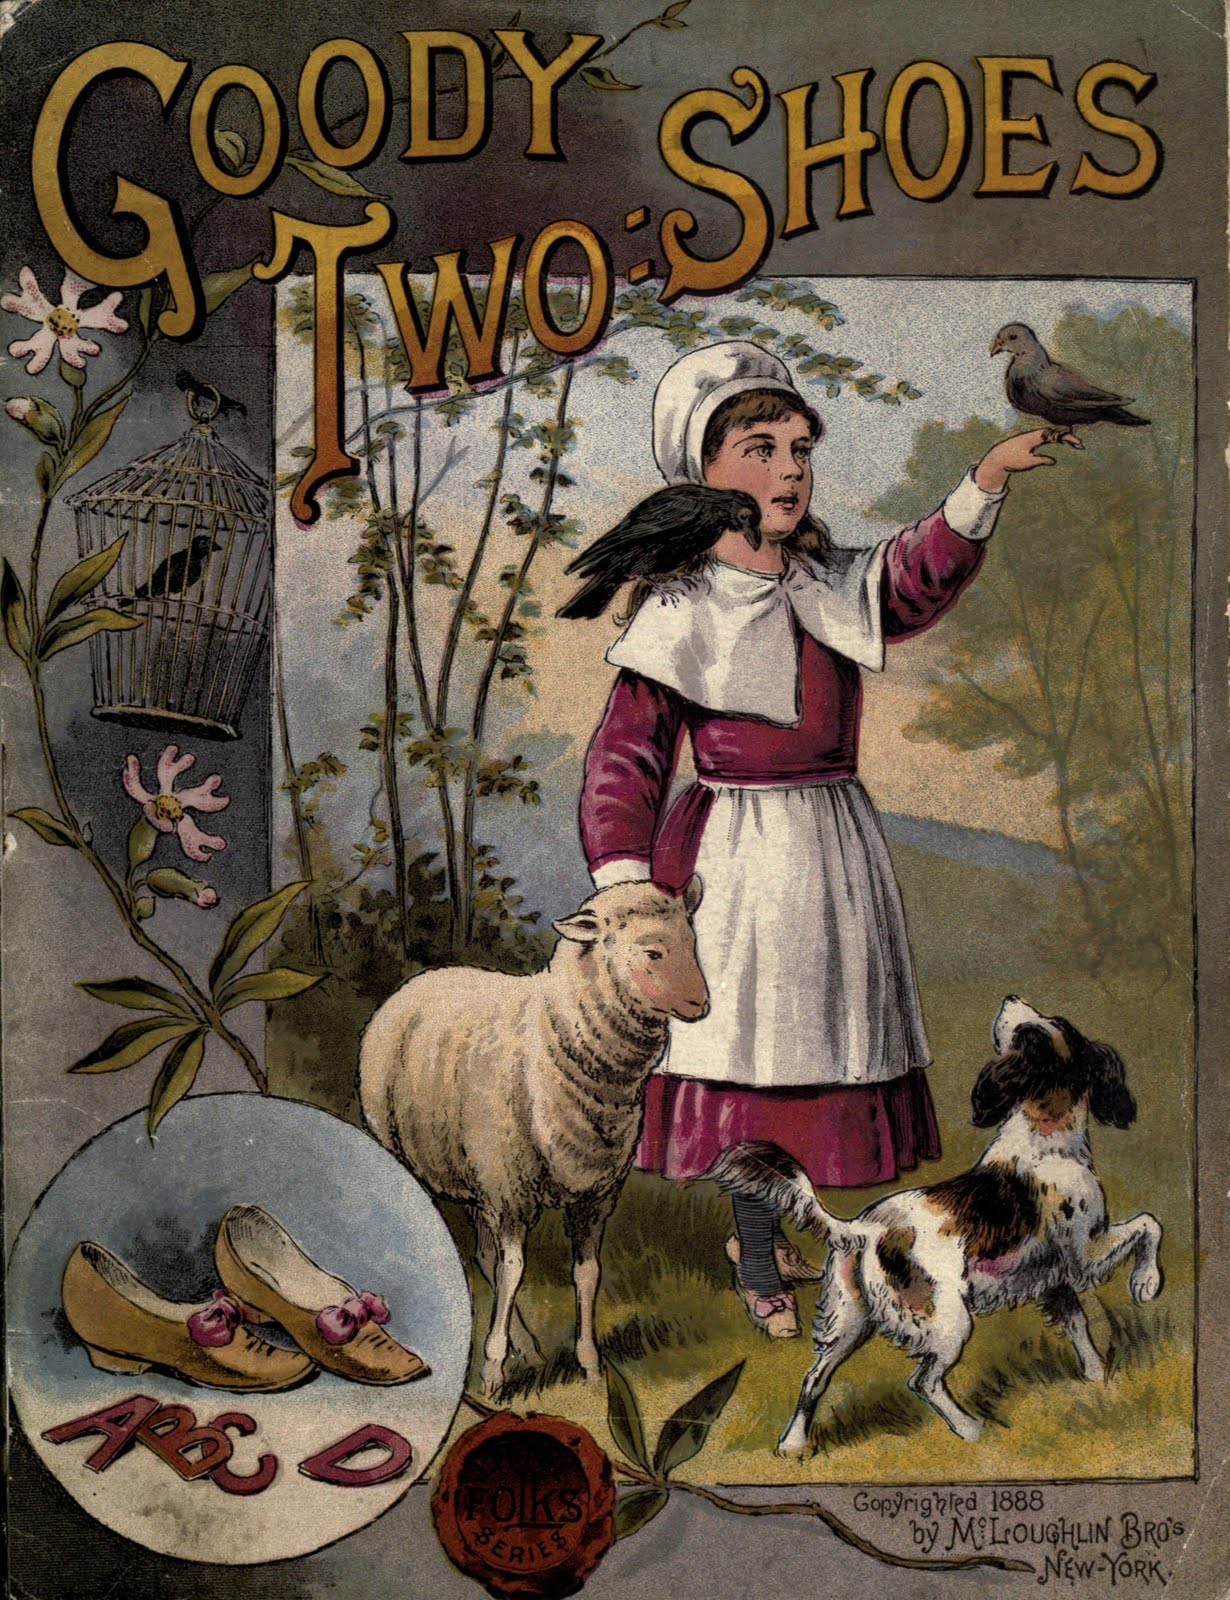 Book Cover Illustration History : Vintage ephemera illustrated children s book cover